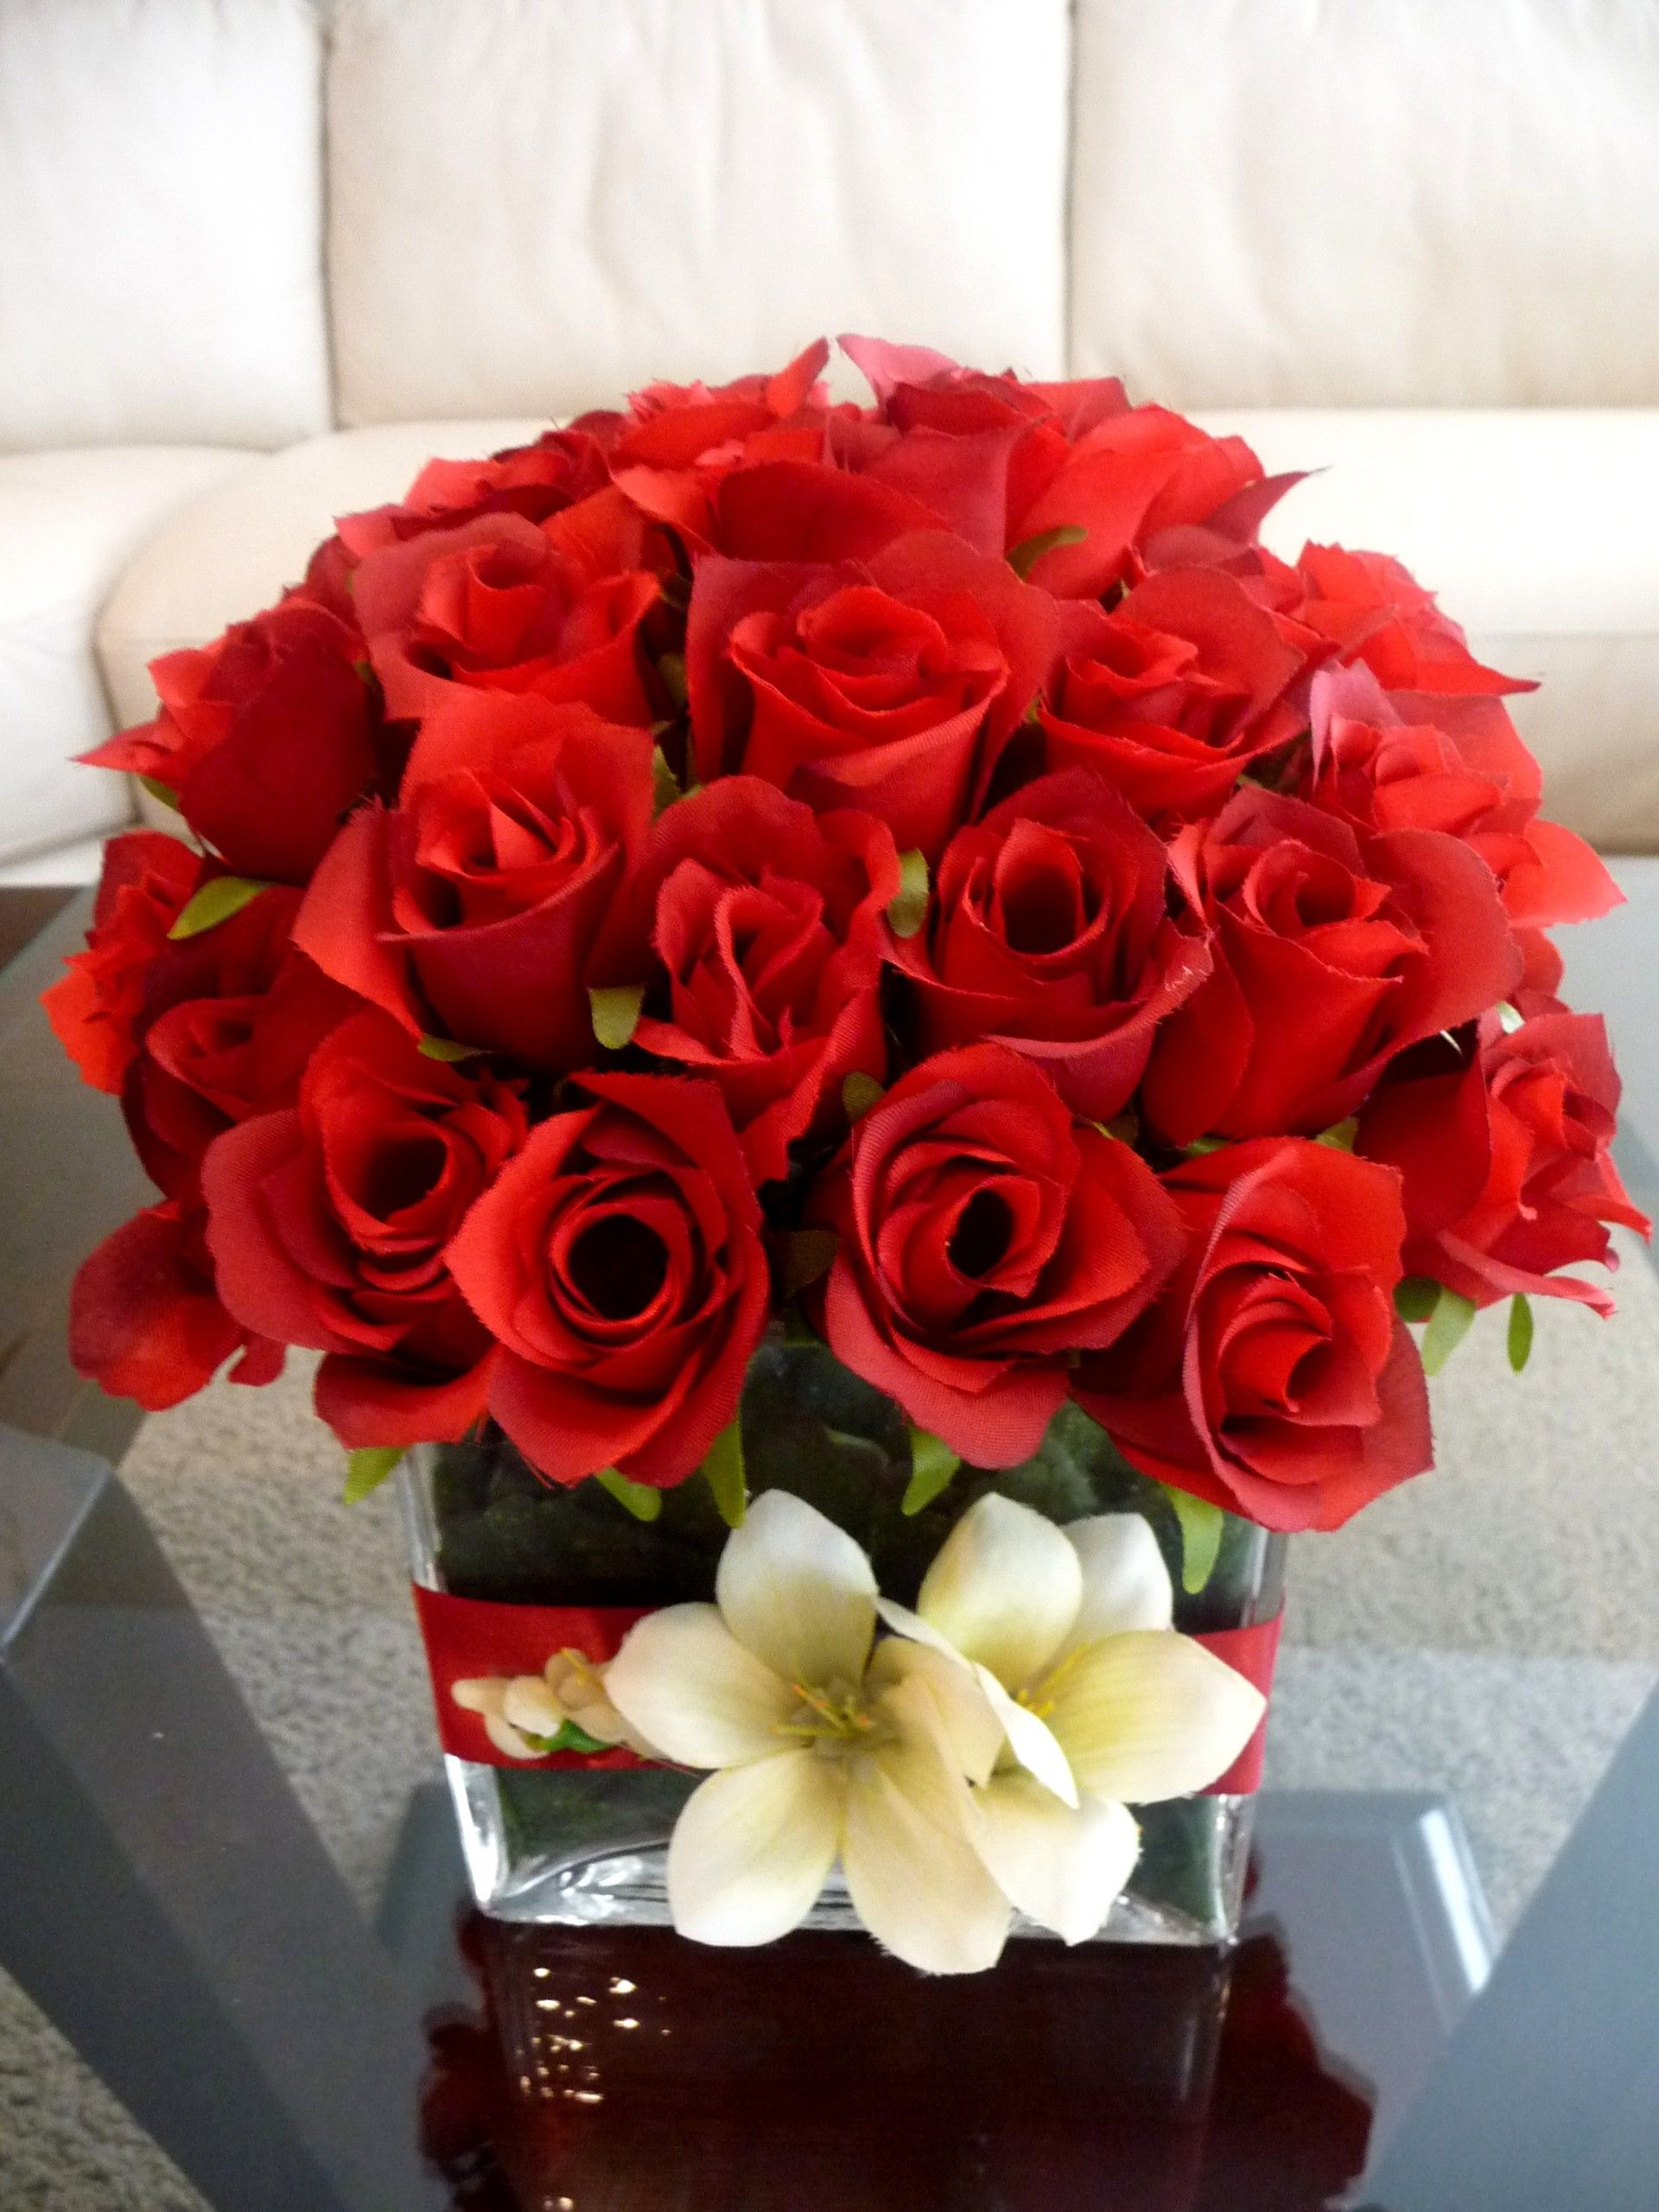 Photo via event decor red roses and floating candles red roses tightly arranged in a glass vase with a red ribbon and floral decorated vase reviewsmspy